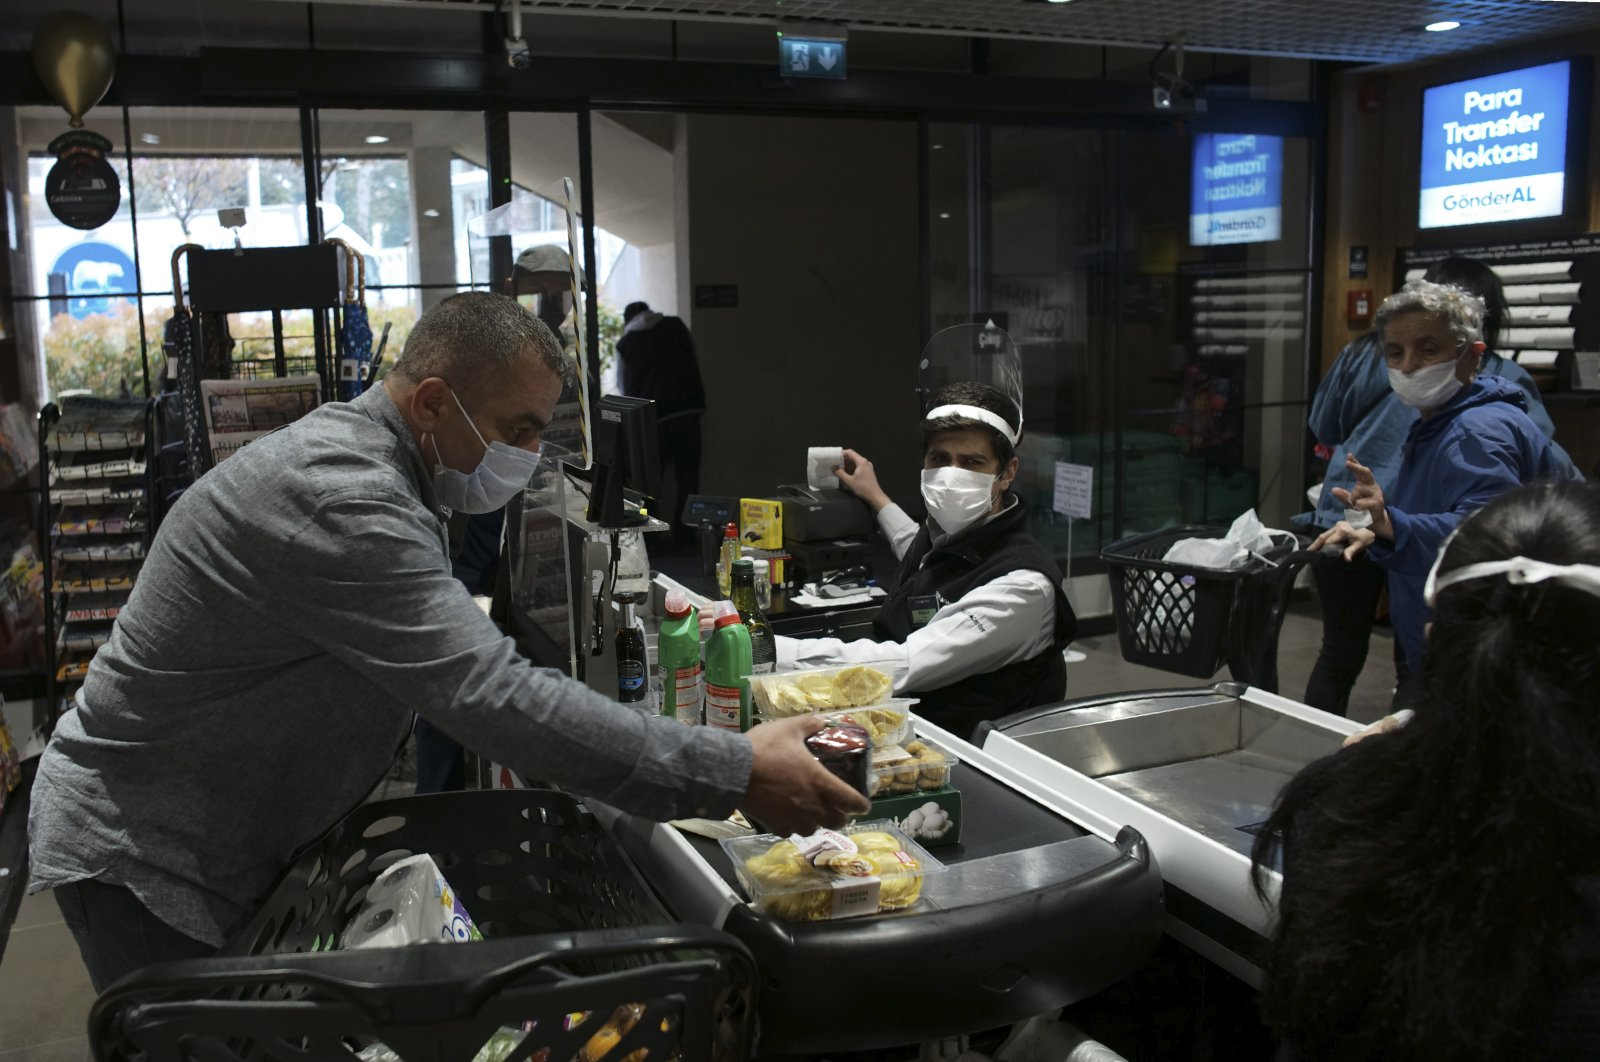 People wearing face masks shop for food at a market, in Ankara Turkey, Tuesday, April 21, 2020, two days before the start of a four-day curfew declared by the government in an attempt to control the spread of coronavirus. (AP Photo)